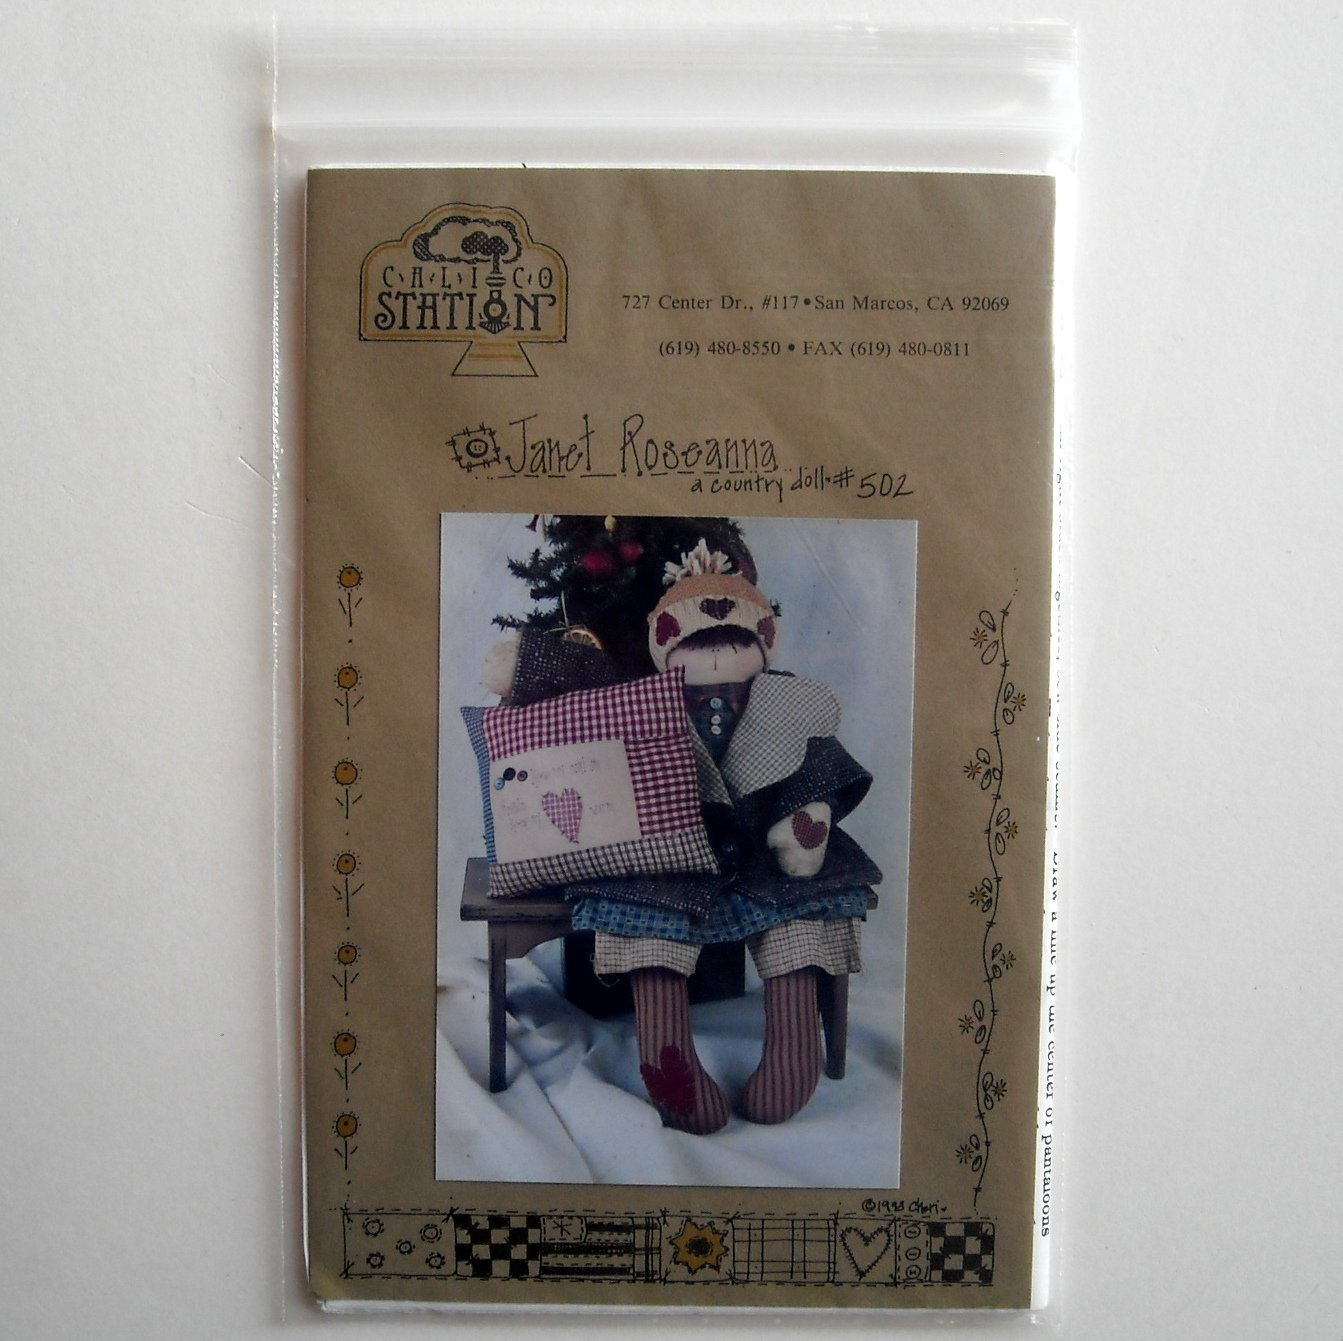 Calico Station Designs Janet Roseanna Country Doll Crafts Pattern No 502